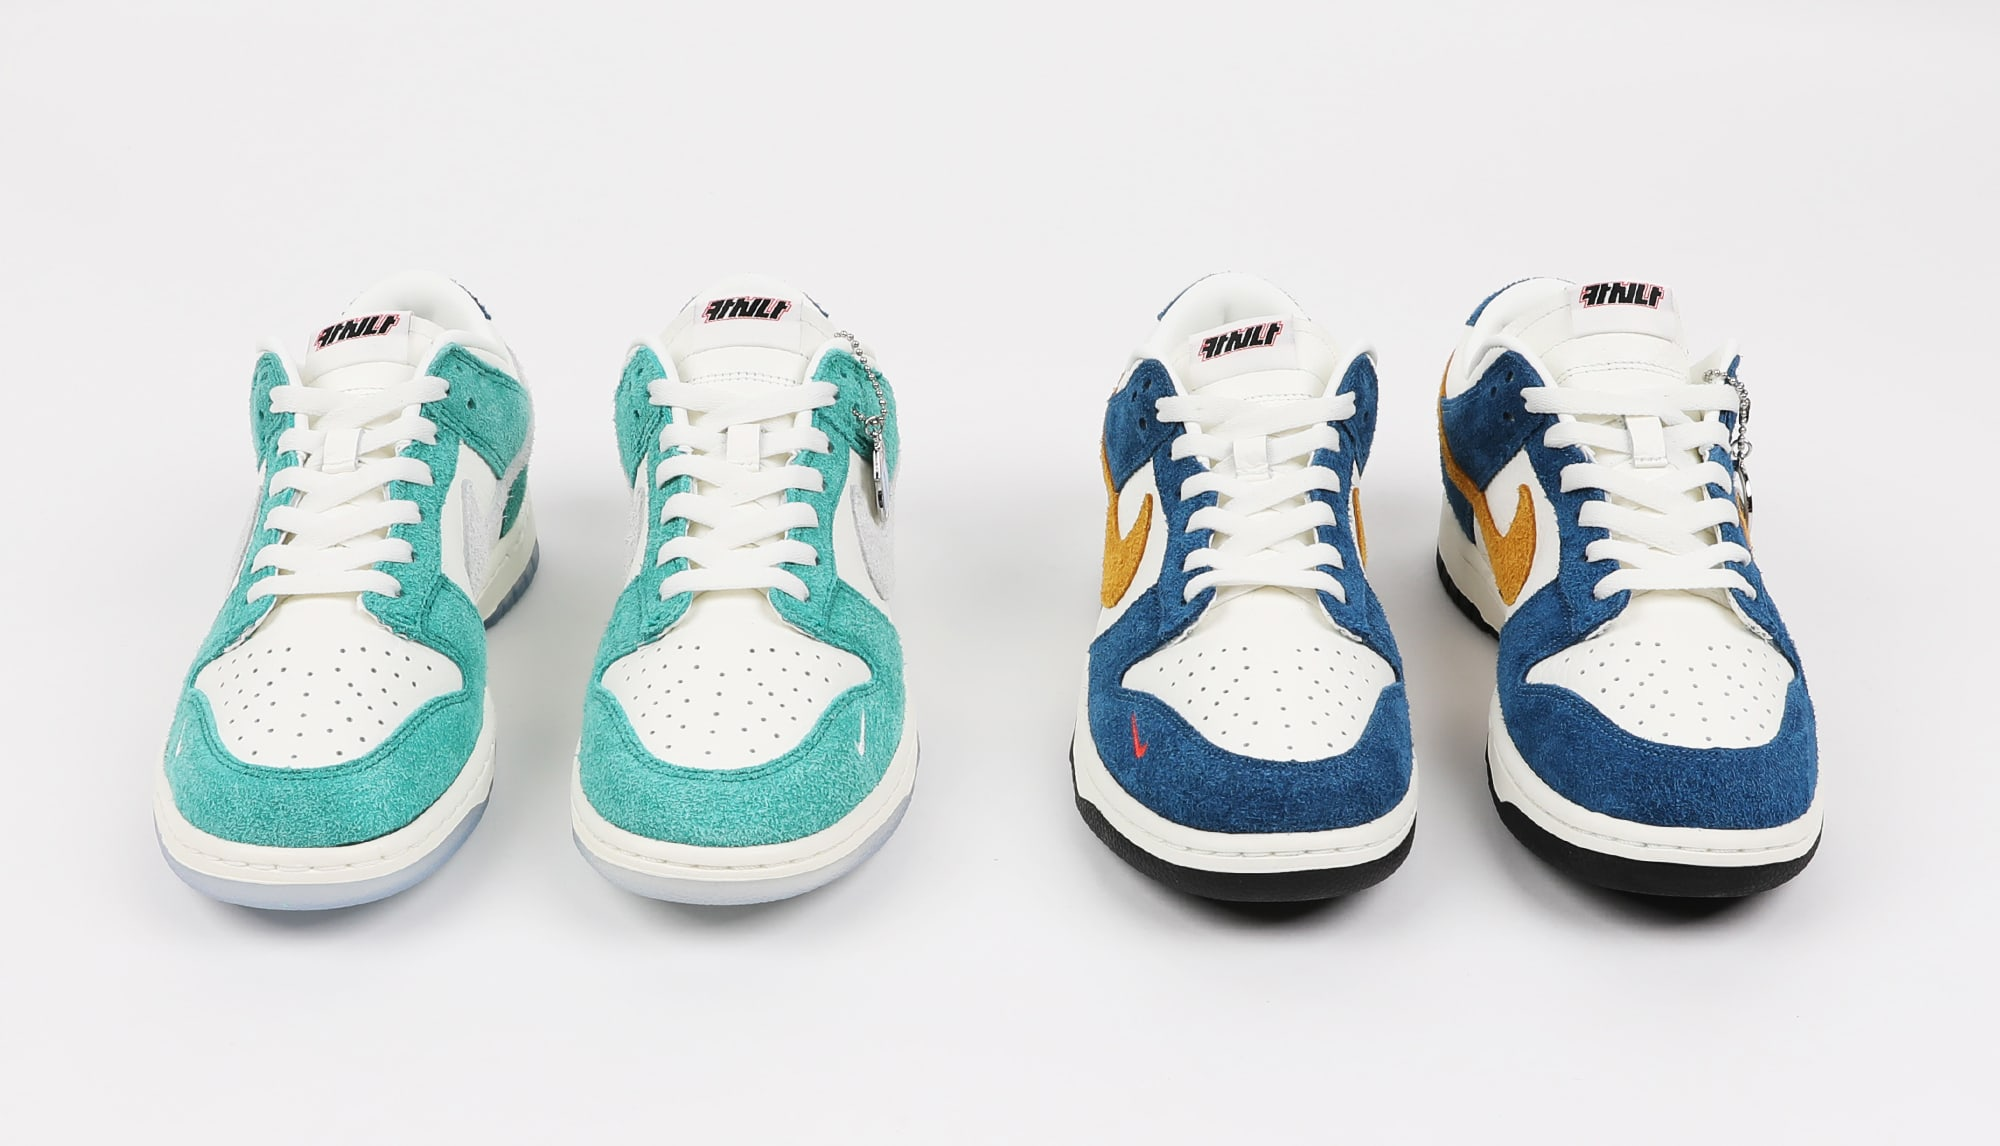 Kasina x Nike Dunk Low Collaboration (Front)